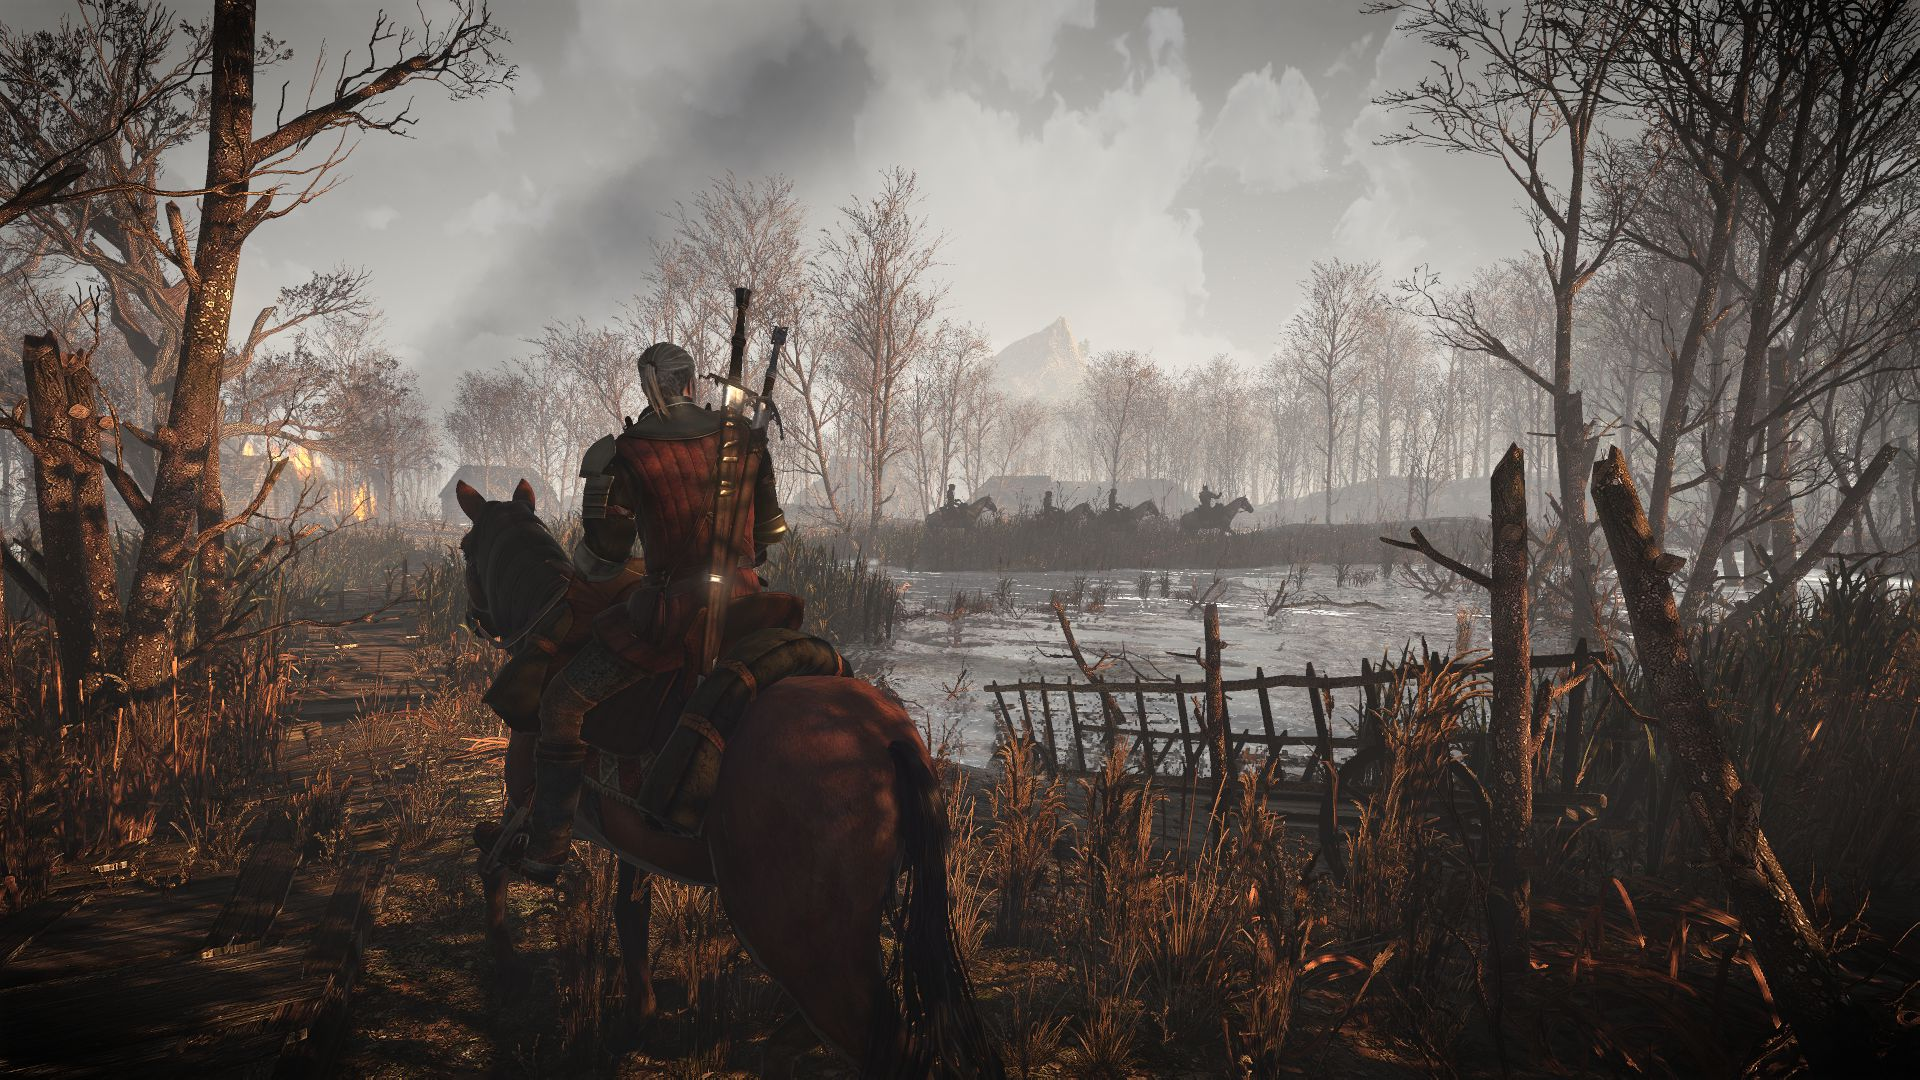 the_witcher_3_wild_hunt__mysterious_swamps_are_often_full_of_dangers_1402422225